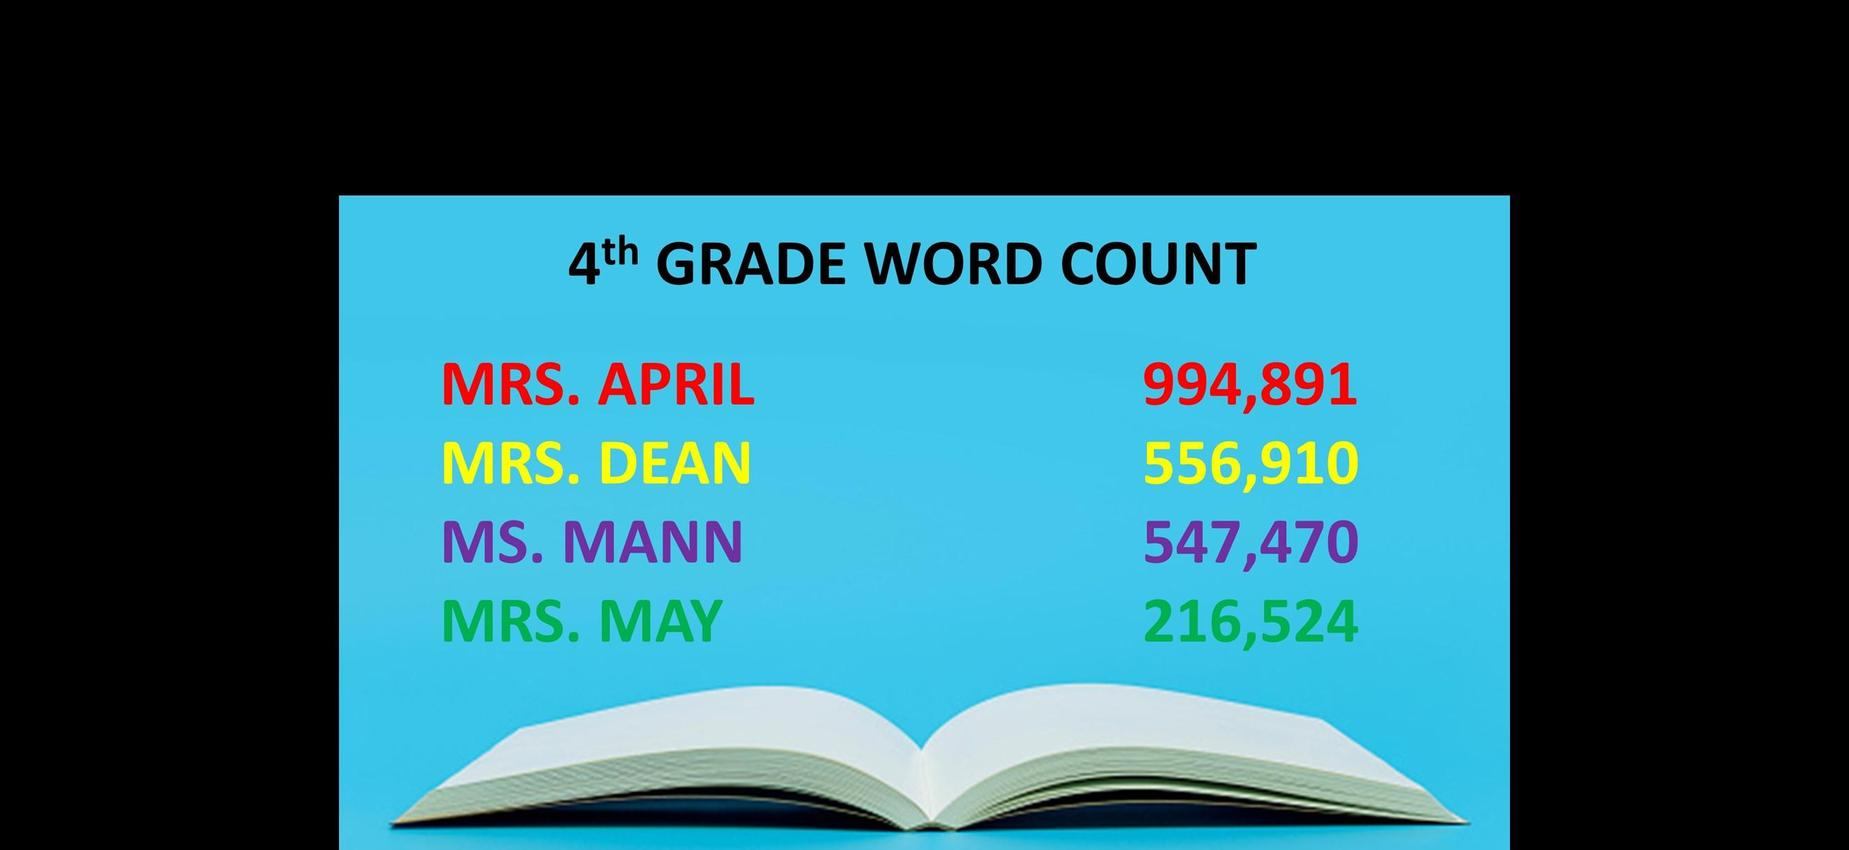 4th Grade Word Count